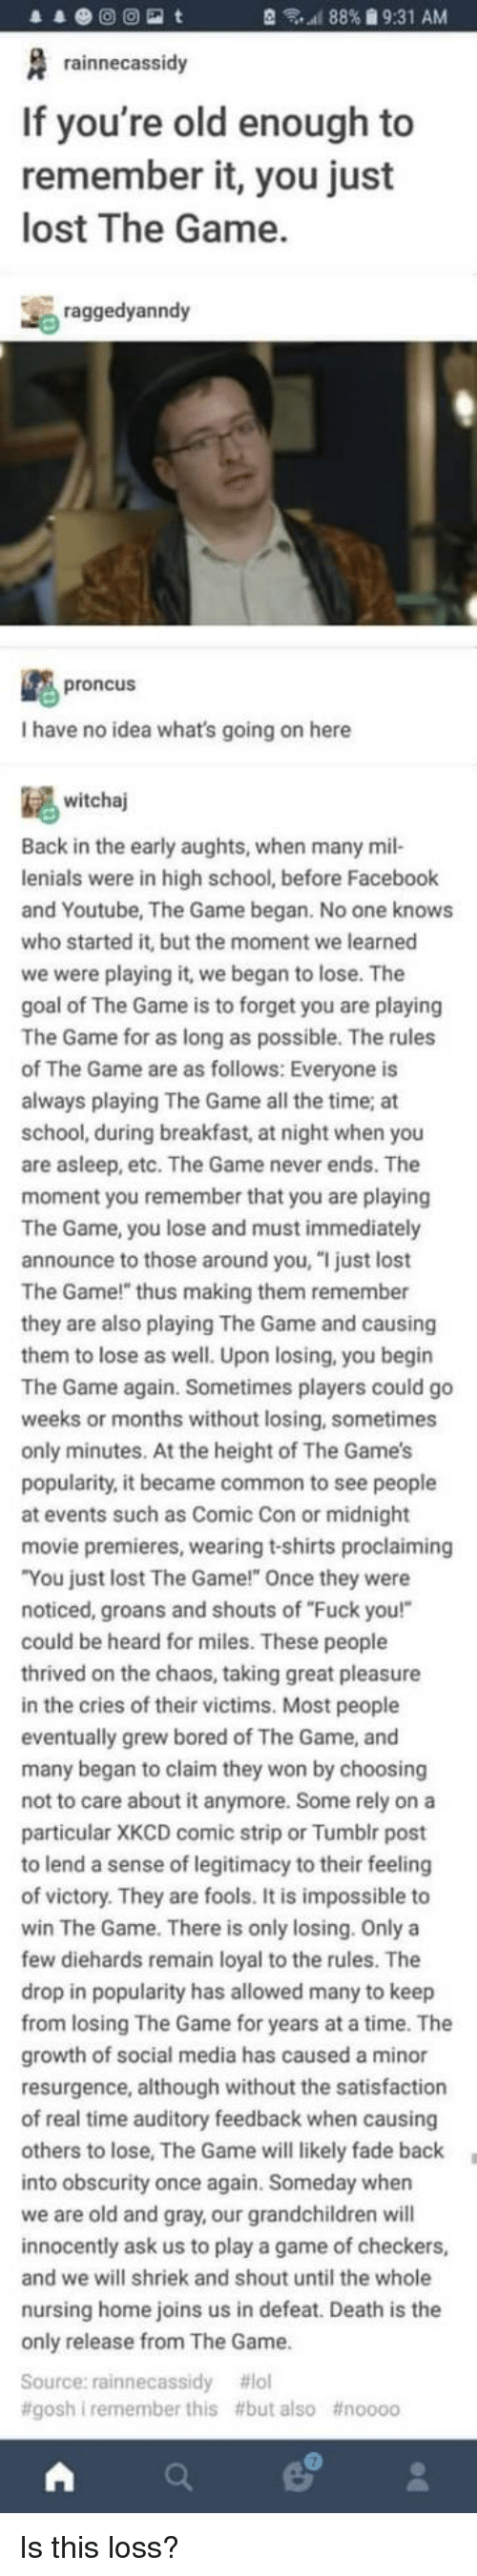 """The Games: 88% 9:31 AM  rainnecassidy  If you're old enough to  remember it, you just  lost The Game.  raggedyanndy  proncus  I have no idea what's going on here  witchaj  Back in the early aughts, when many mil-  lenials were in high school, before Facebook  and Youtube, The Game began. No one knows  who started it, but the moment we learned  we were playing it, we began to lose. The  goal of The Game is to forget you are playing  The Game for as long as possible. The rules  The Game are as follows: Everyone is  ays playing The Game all the time; at  school, during breakfast, at night when you  are asleep, etc. The Game never ends. The  moment you remember that you are playing  The Game, you lose and must immediately  announce to those around you, """"I just lost  The Game!"""" thus making them remember  they are also playing The Game and causing  them to lose as well. Upon losing, you begin  The Game again. Sometimes players could go  weeks or months without losing, sometimes  only minutes. At the height of The Game's  popularity, it became common to see people  at events such as Comic Con or midnight  movie premieres, wearing t-shirts proclaiming  You just lost The Game!"""" Once they were  noticed, groans and shouts of """"Fuck you!""""  could be heard for miles. These people  rived on the chaos, taking great pleasure  in the cries of their victims. Most people  eventually grew bored of The Game, and  many began to claim they won by choosing  not to care about it anymore. Some rely on a  particular XKCD comic strip or Tumblr post  to lend a sense of legitimacy to their feeli  of victory. They are fools. It is impossible to  win The Game. There is only losing. Only a  few diehards remain loyal to the rules. The  drop in popularity has allowed many to keep  m losing The Game for years at a time. The  growth of social media has caused a minor  resurgence, although without the satisfaction  of real time auditory feedback when caus  others to lose, The Game will likely fade back  i"""